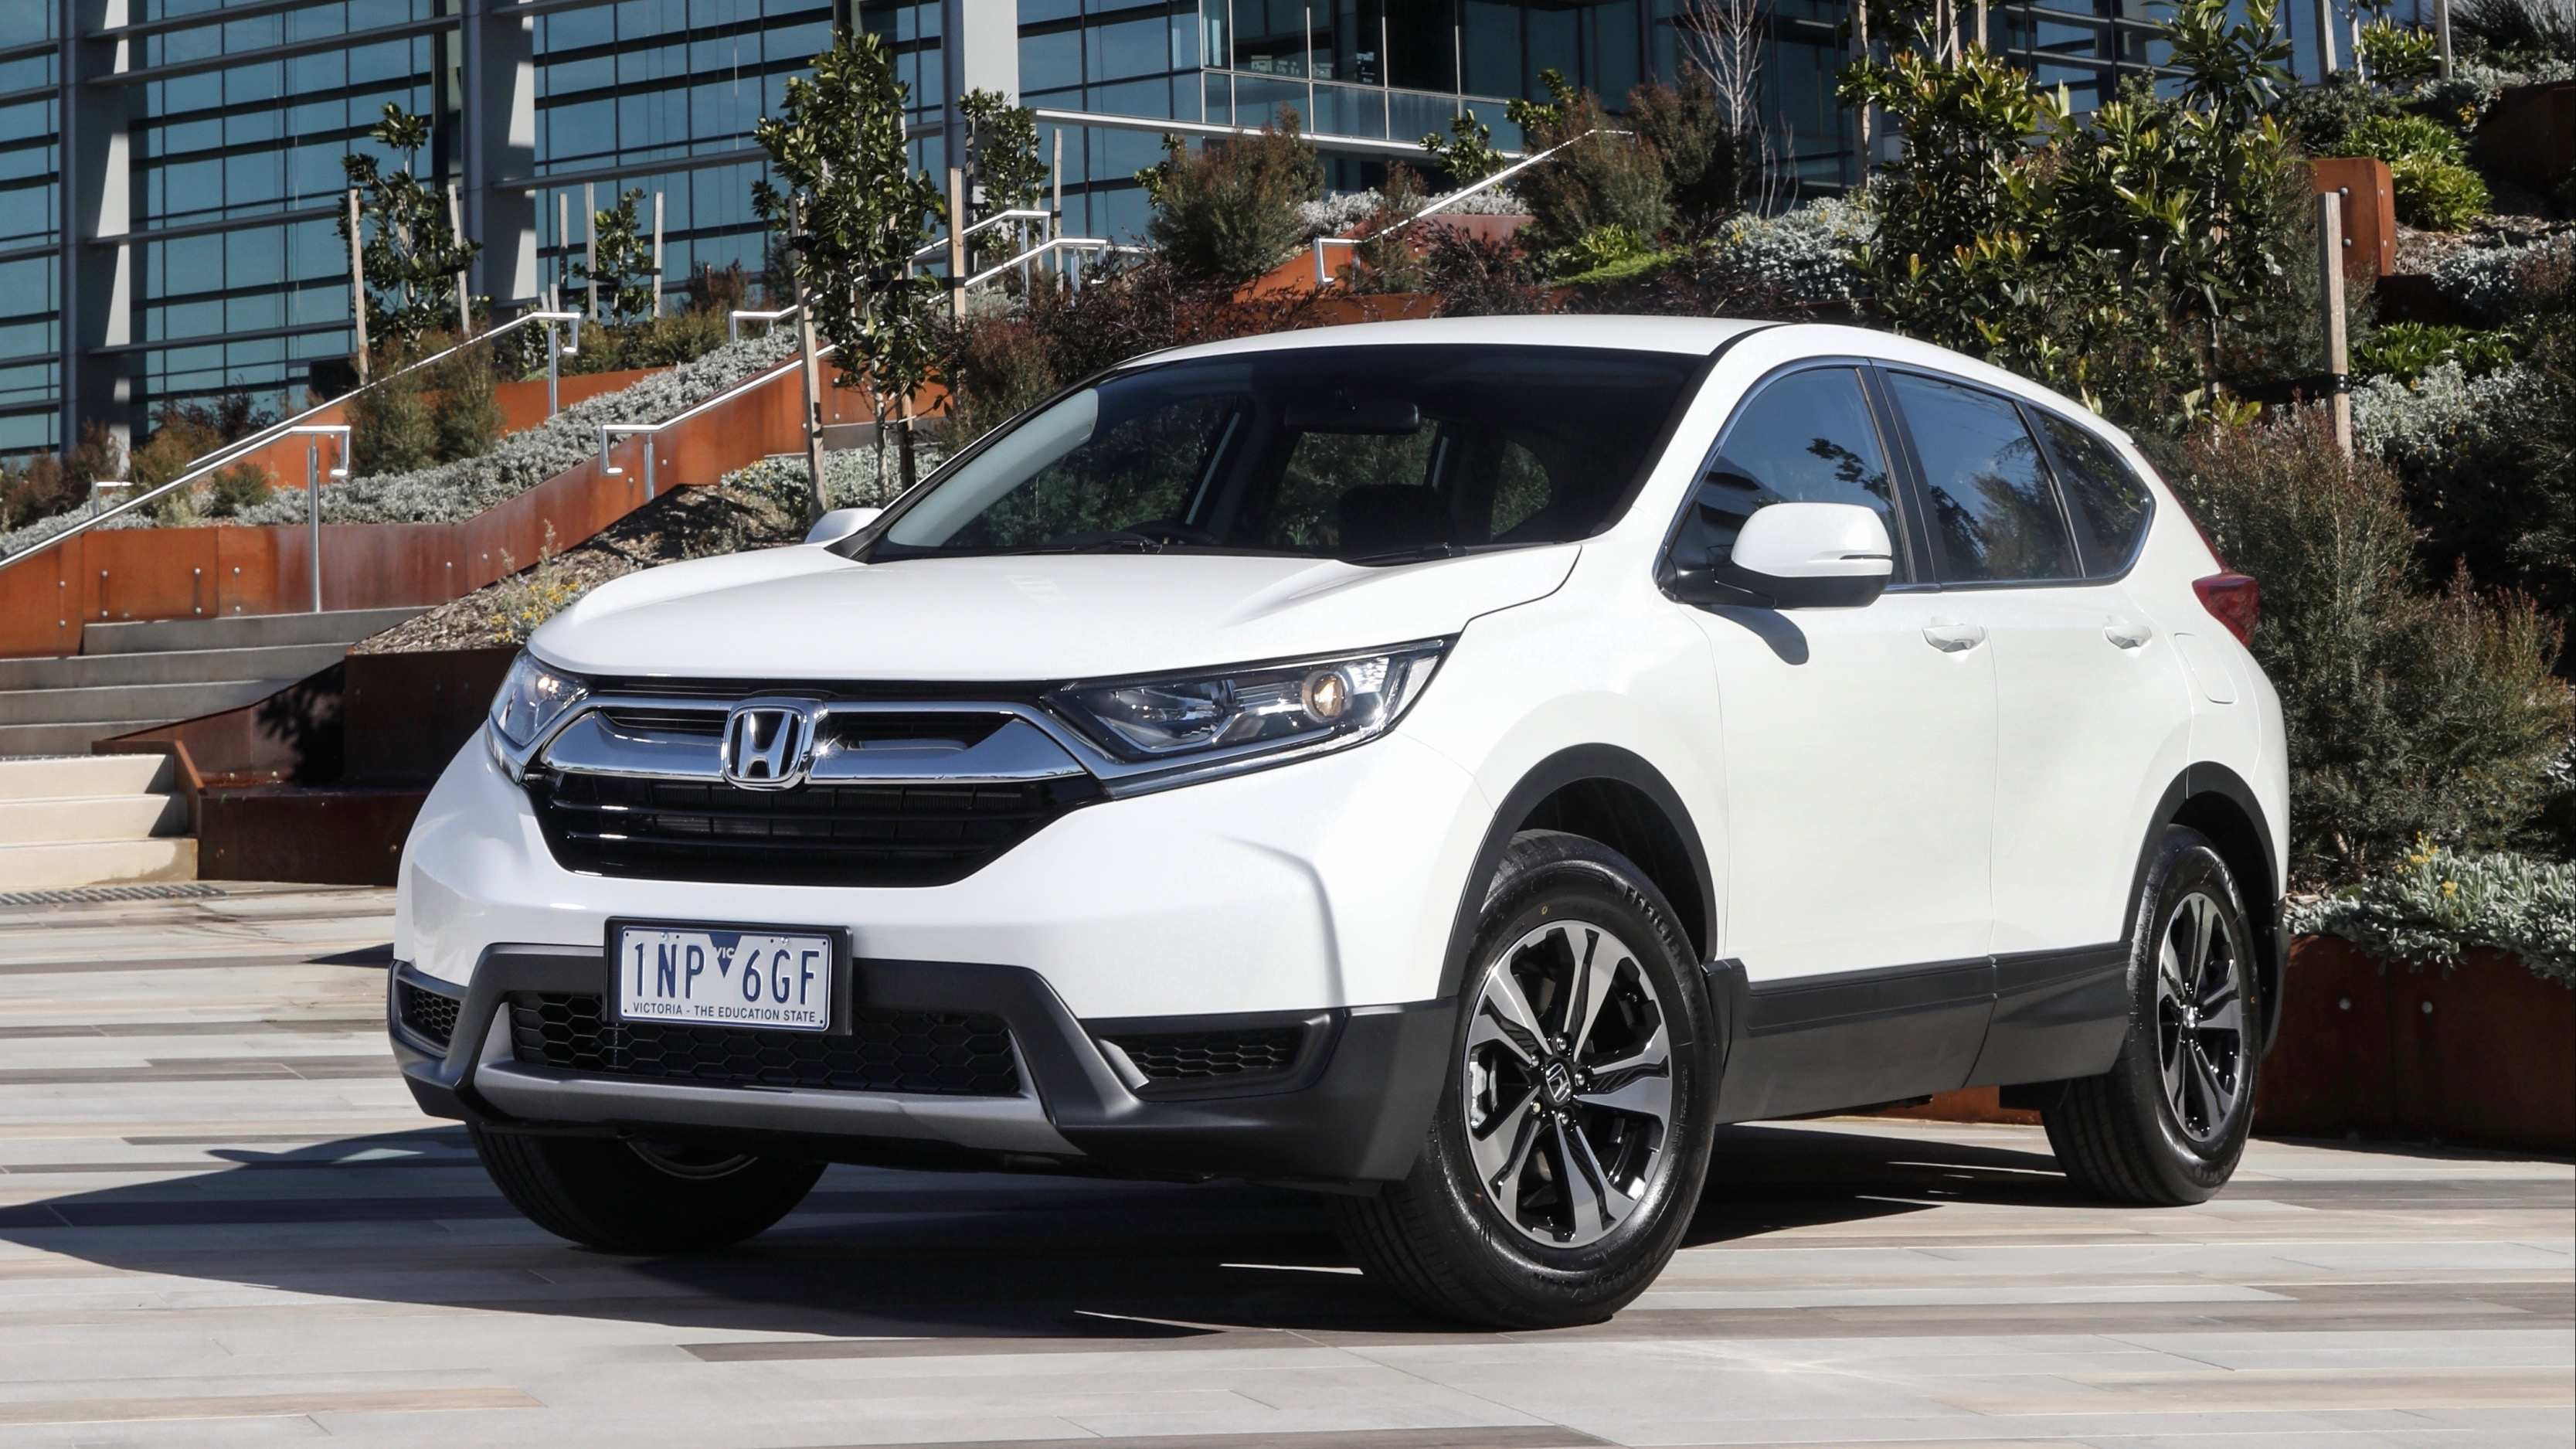 43 New The Crv Honda 2019 Release Redesign and Concept with The Crv Honda 2019 Release